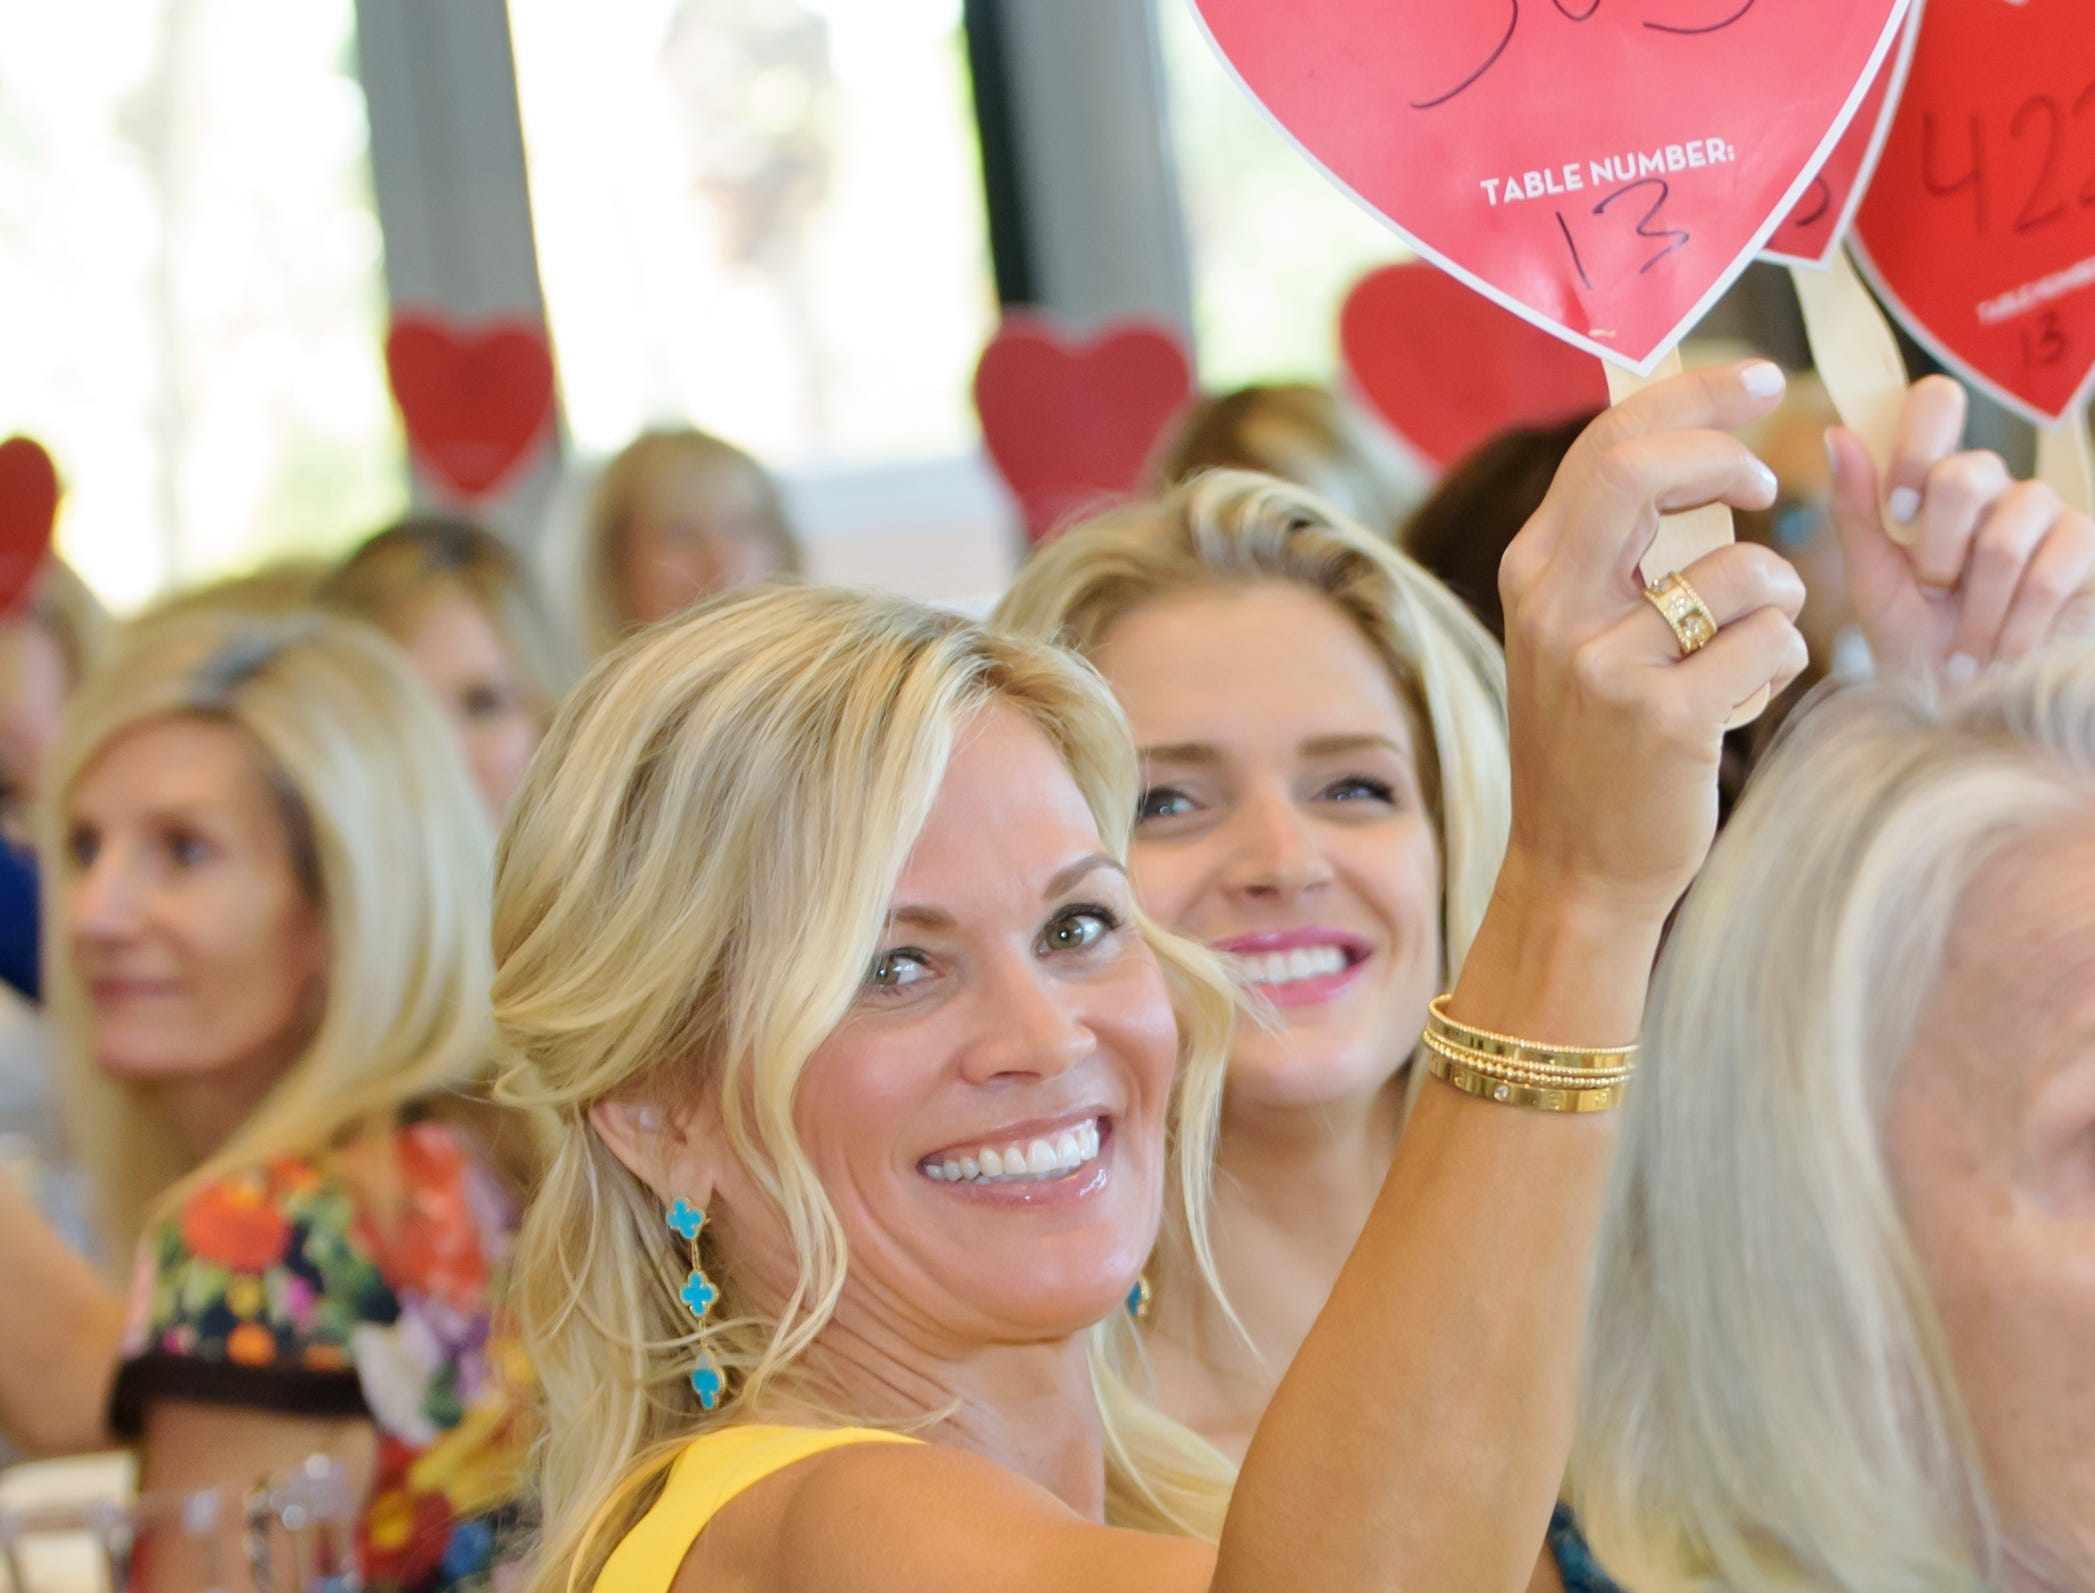 Alli Nicklaus raises her heart-shaped bid paddle at the Golden Heart Luncheon in Palm Beach Gardens.